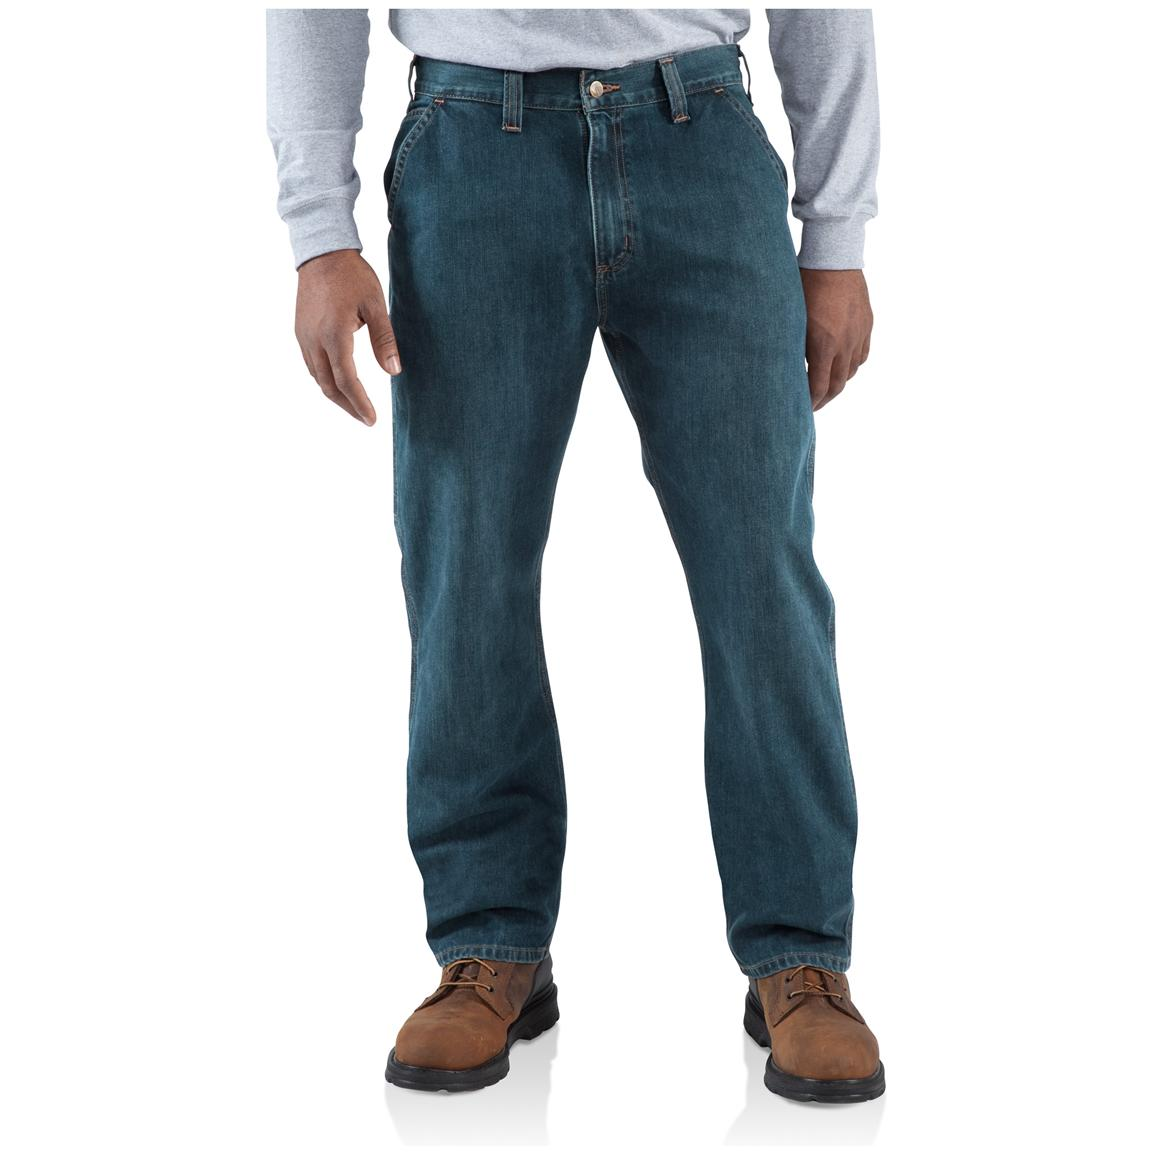 Carhartt® Relaxed Straight Fit Dungaree Jeans, Light Worn-in Blue